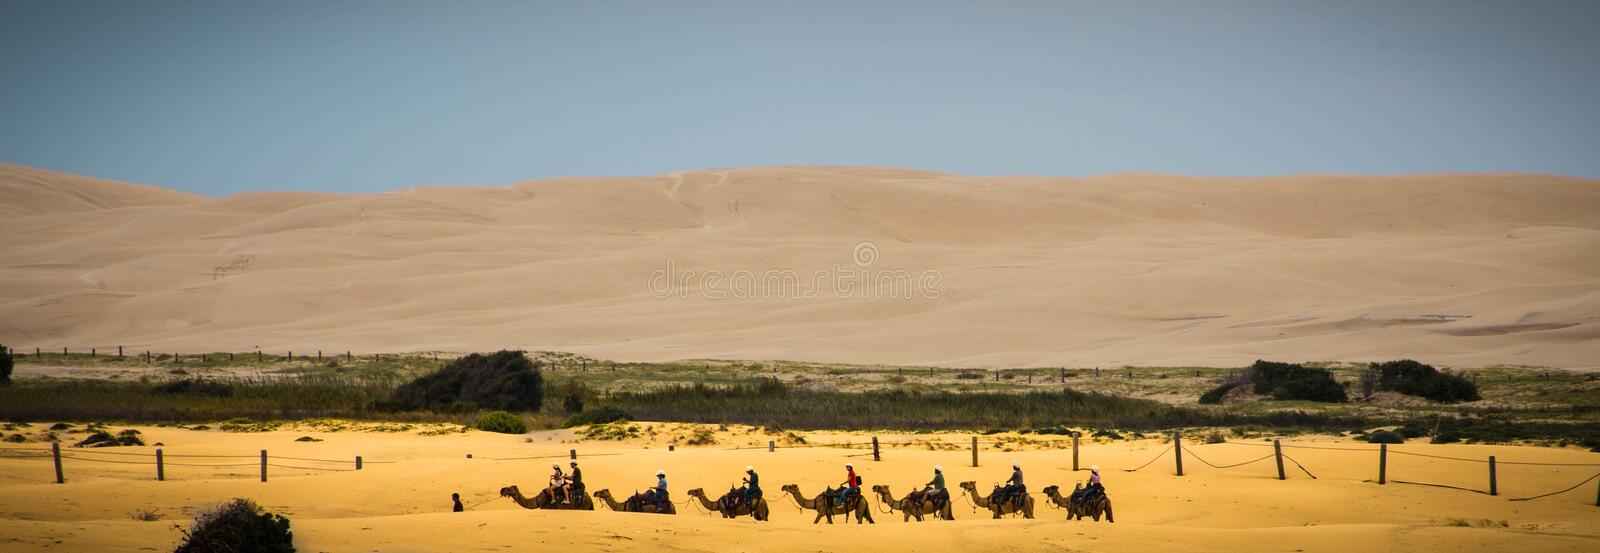 View of camels in desert royalty free stock images